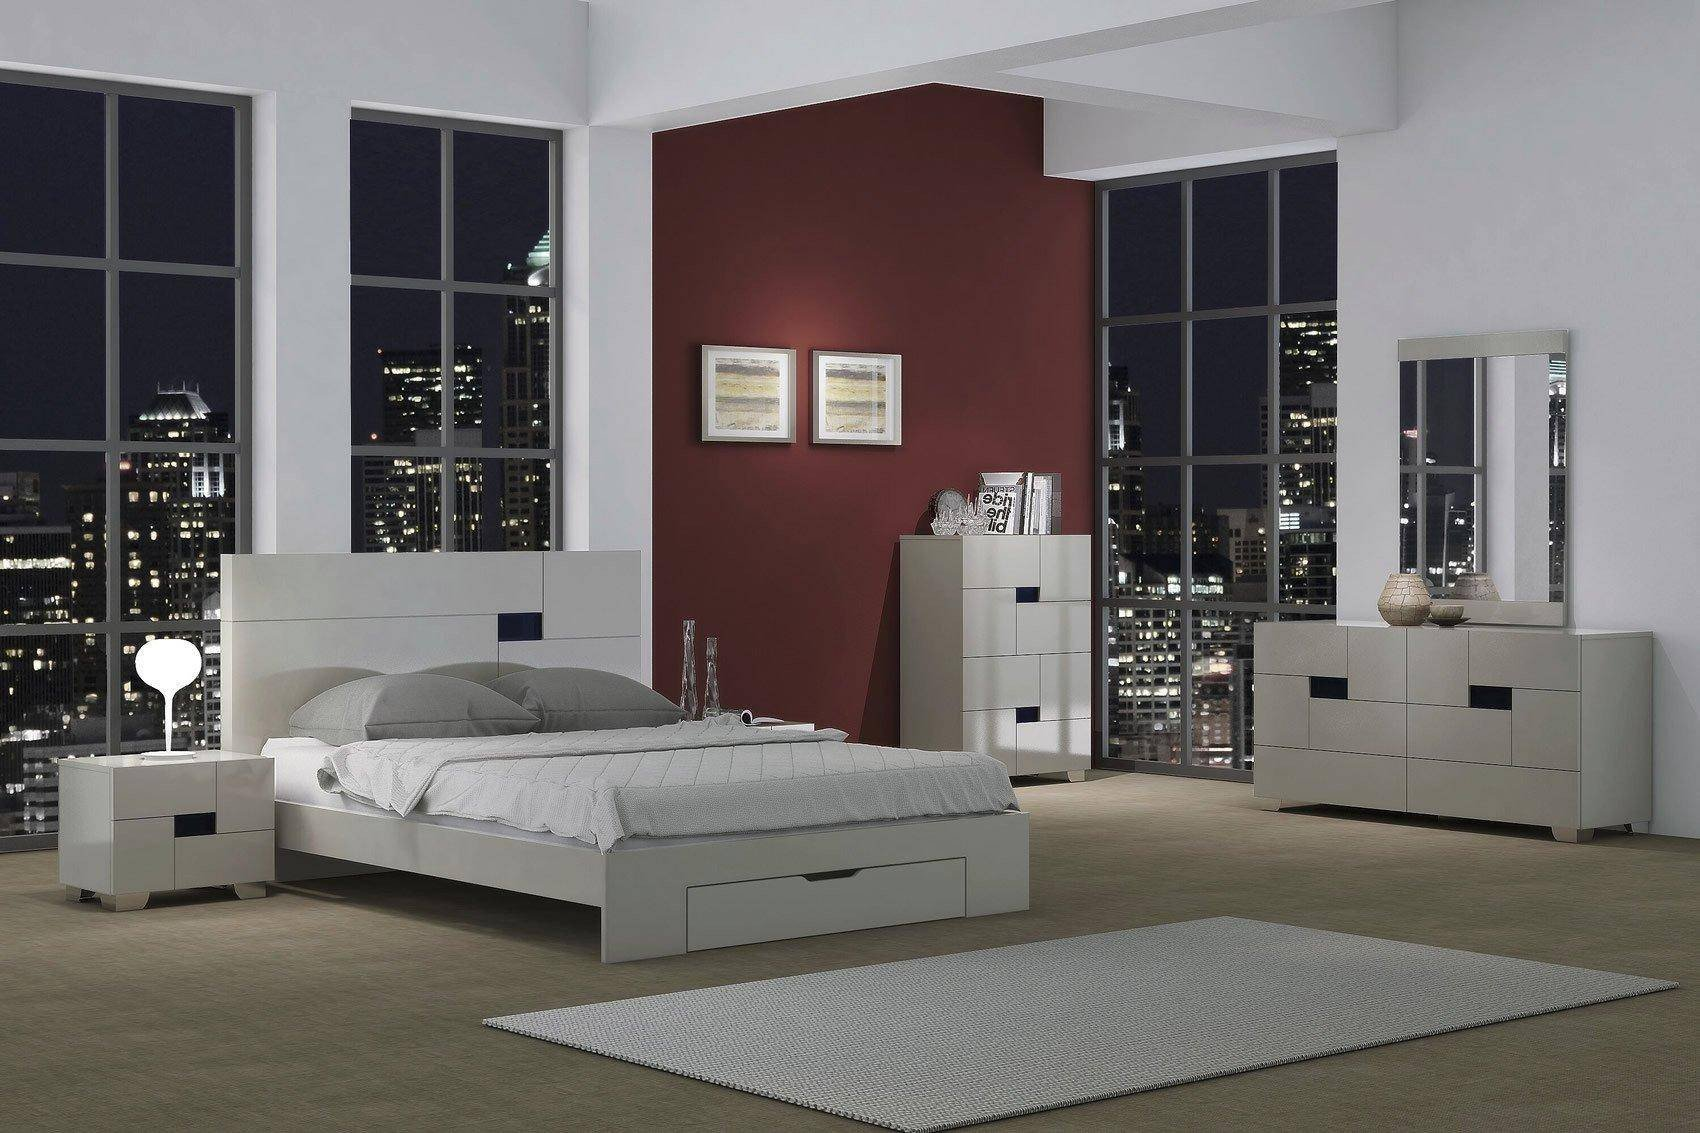 Grey and Burgundy Bedroom Inspirational Contemporary Light Gray Lacquer Storage Queen Bedroom Set